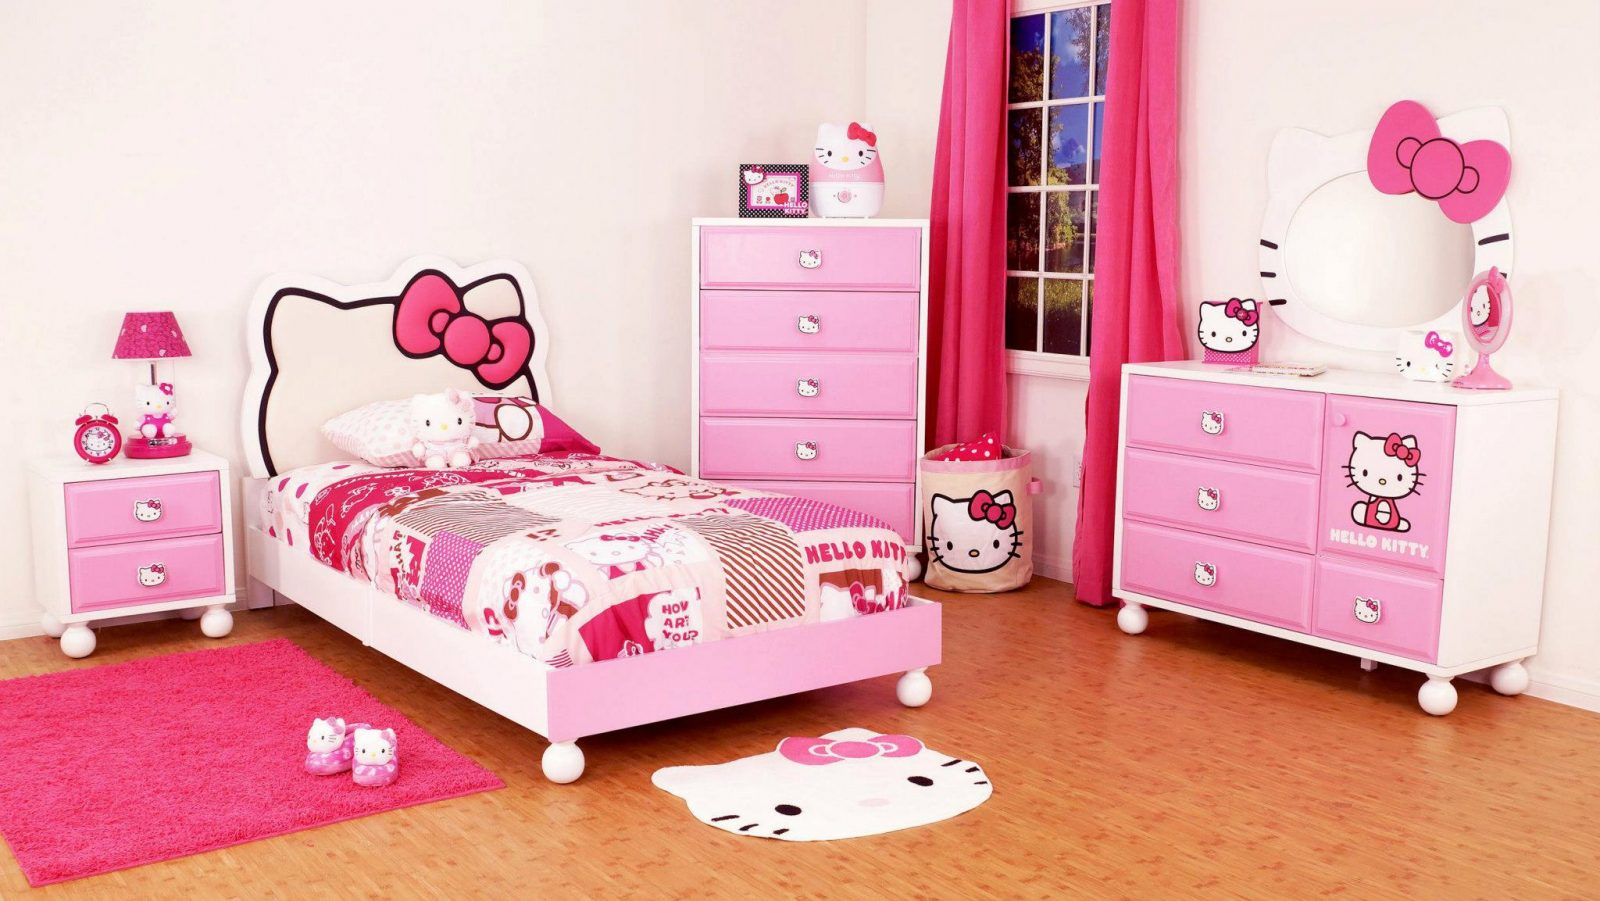 Habitaci n de hello kitty para ni as im genes y fotos - Dormitorios de bebes nina ...